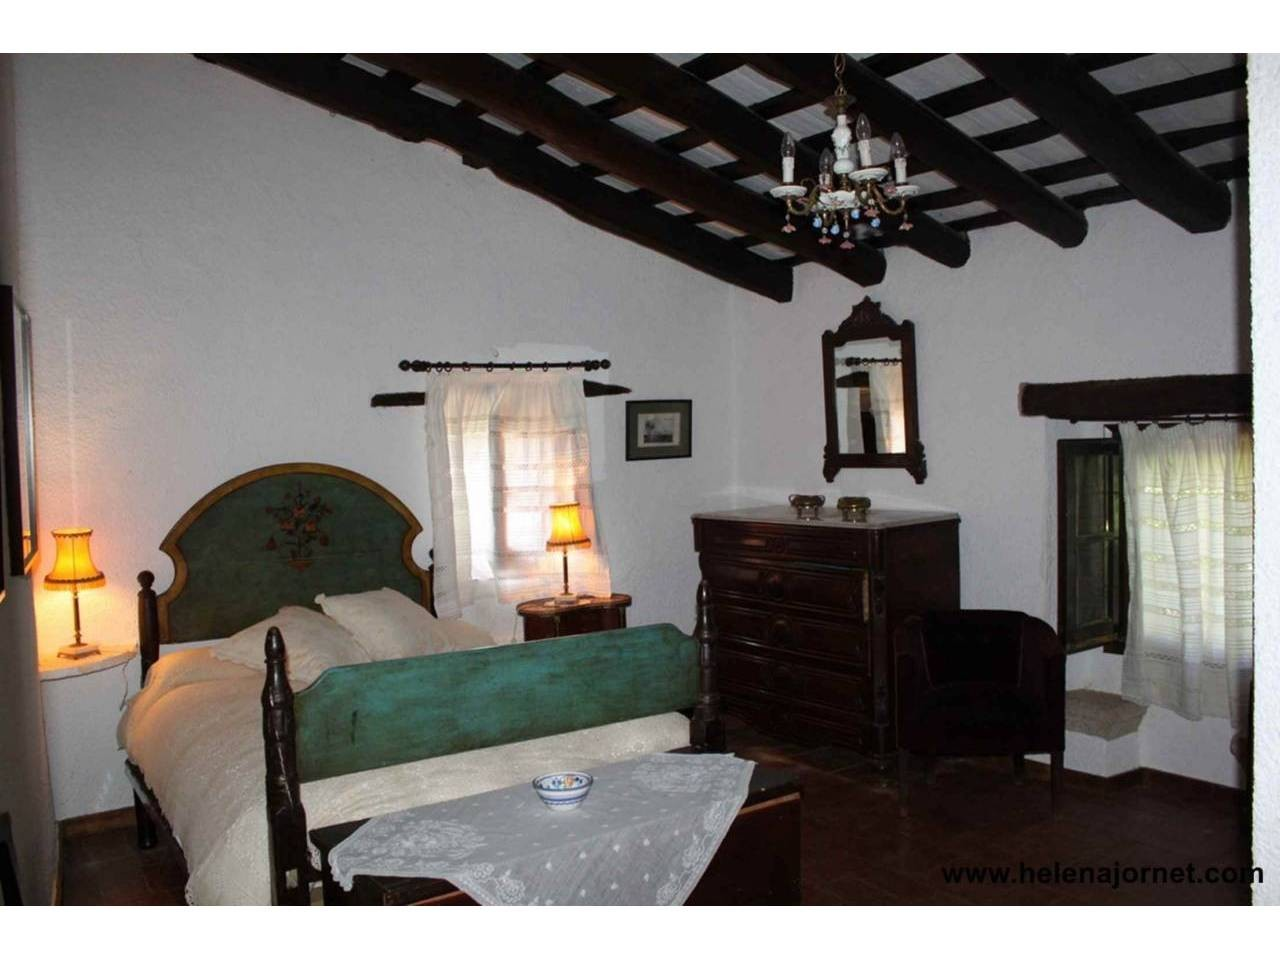 House of the seventeenth century  in perfect condition in the neighborhood of Panedes - 284